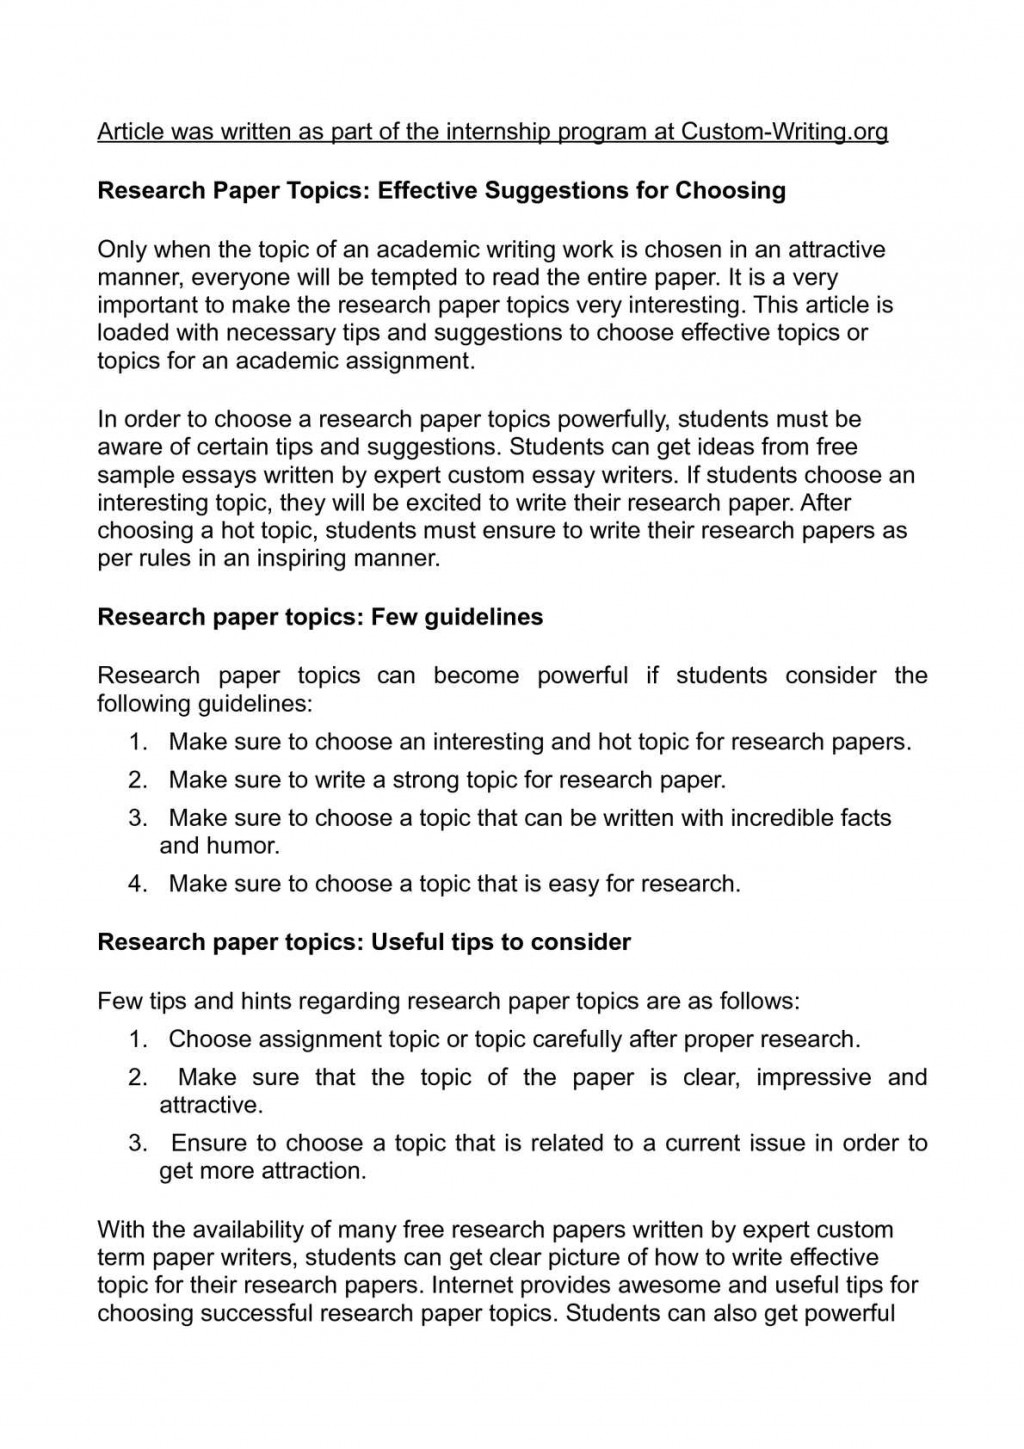 019 Research Paper Topics For Awful Easy Topic About Education School In Psychology Large